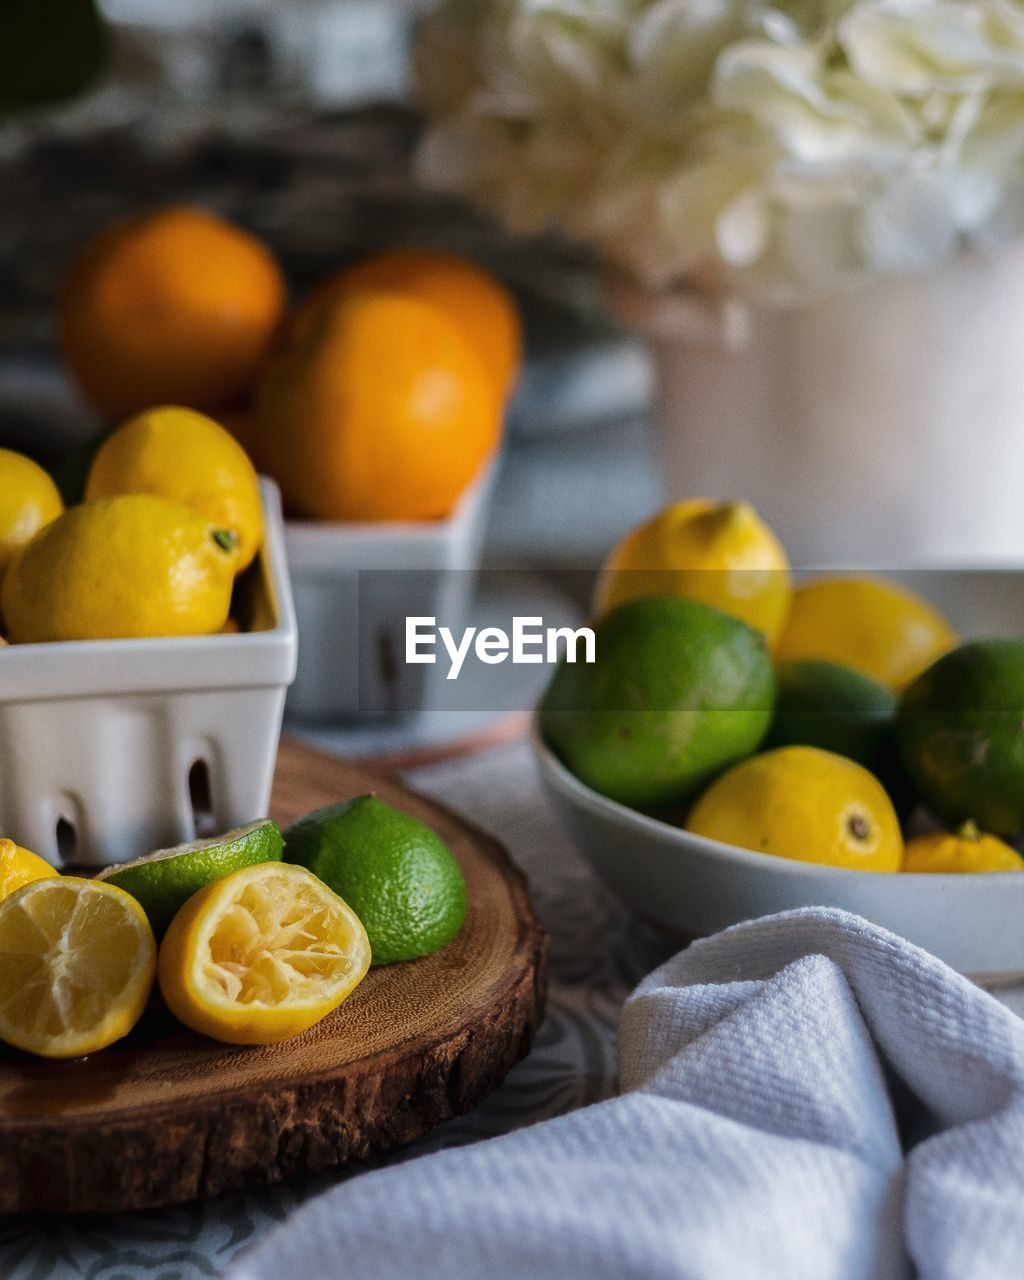 healthy eating, fruit, food, citrus fruit, food and drink, wellbeing, freshness, lemon, orange, no people, orange color, still life, orange - fruit, indoors, table, slice, close-up, lime, yellow, focus on foreground, ripe